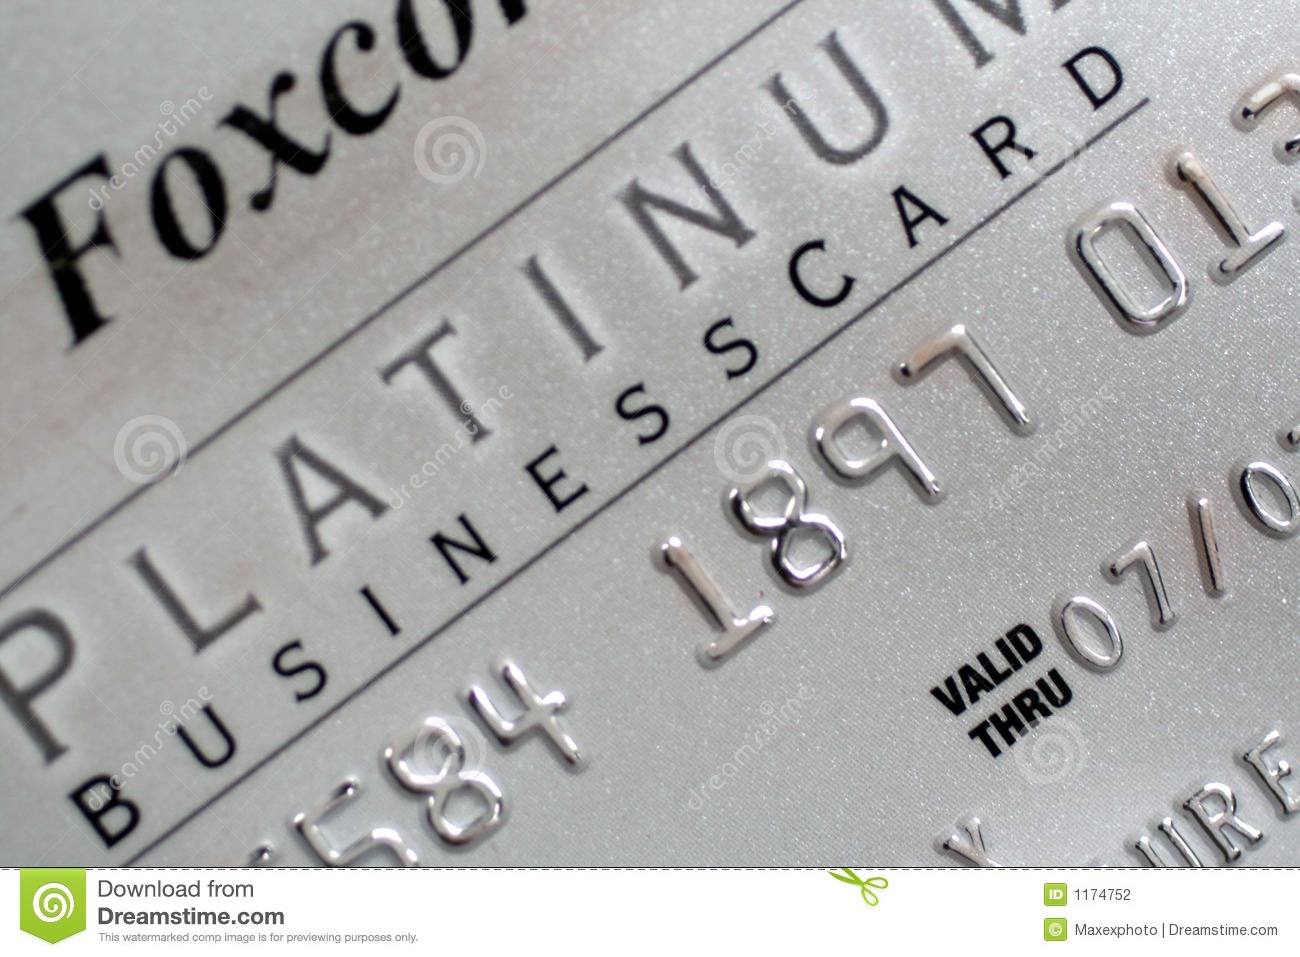 Platinum business credit card gallery free business cards platinum business credit card image collections free business cards platinum business credit card stock photo image magicingreecefo Gallery